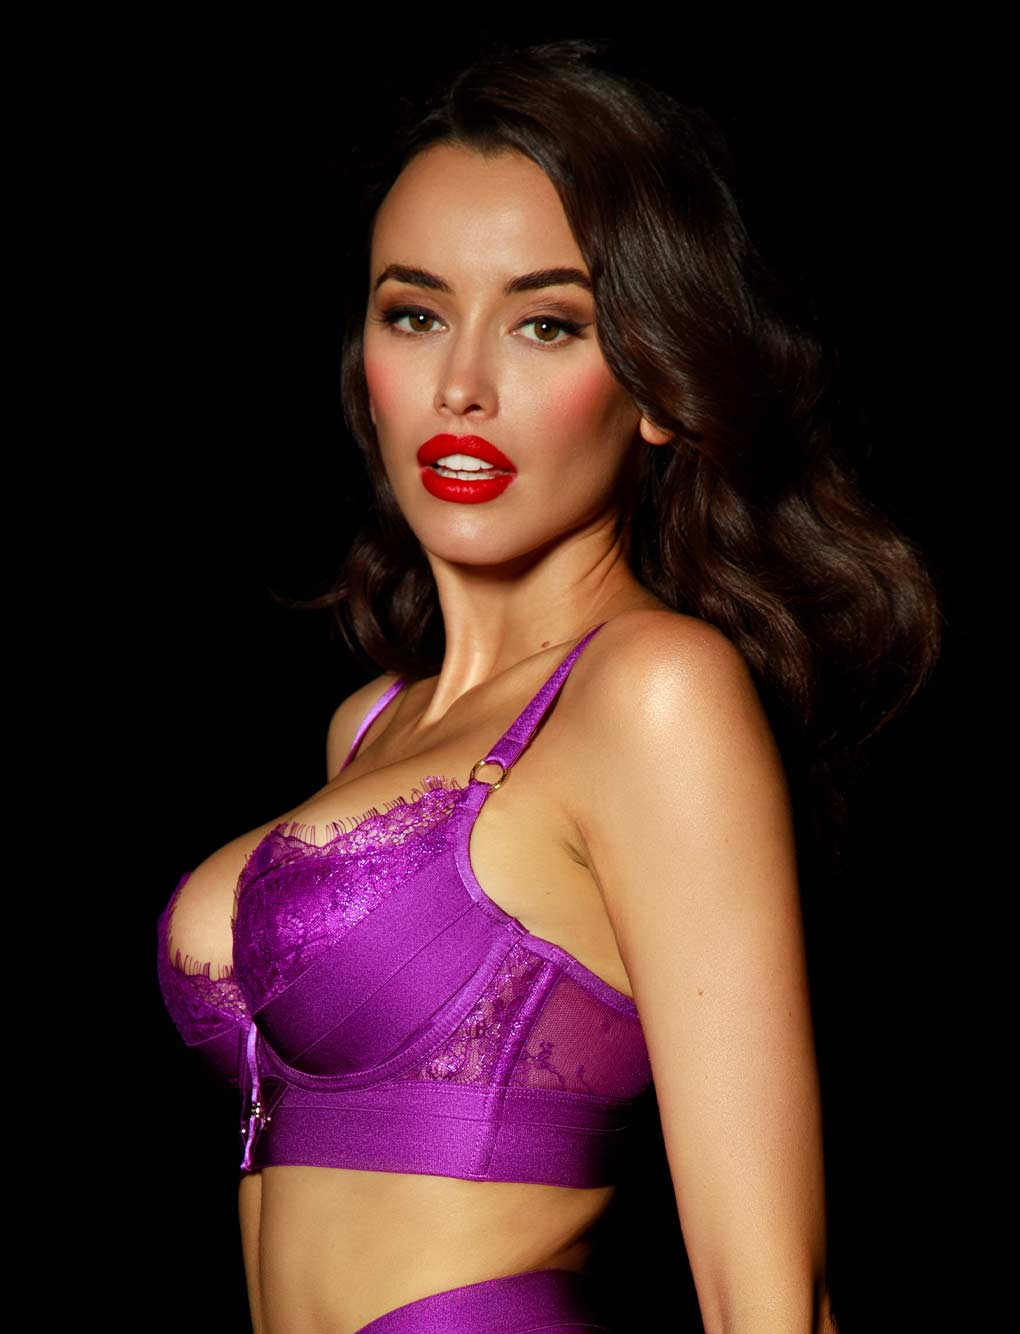 Belinda Purple Lingerie Set - Shop Lingerie | Honey Birdette